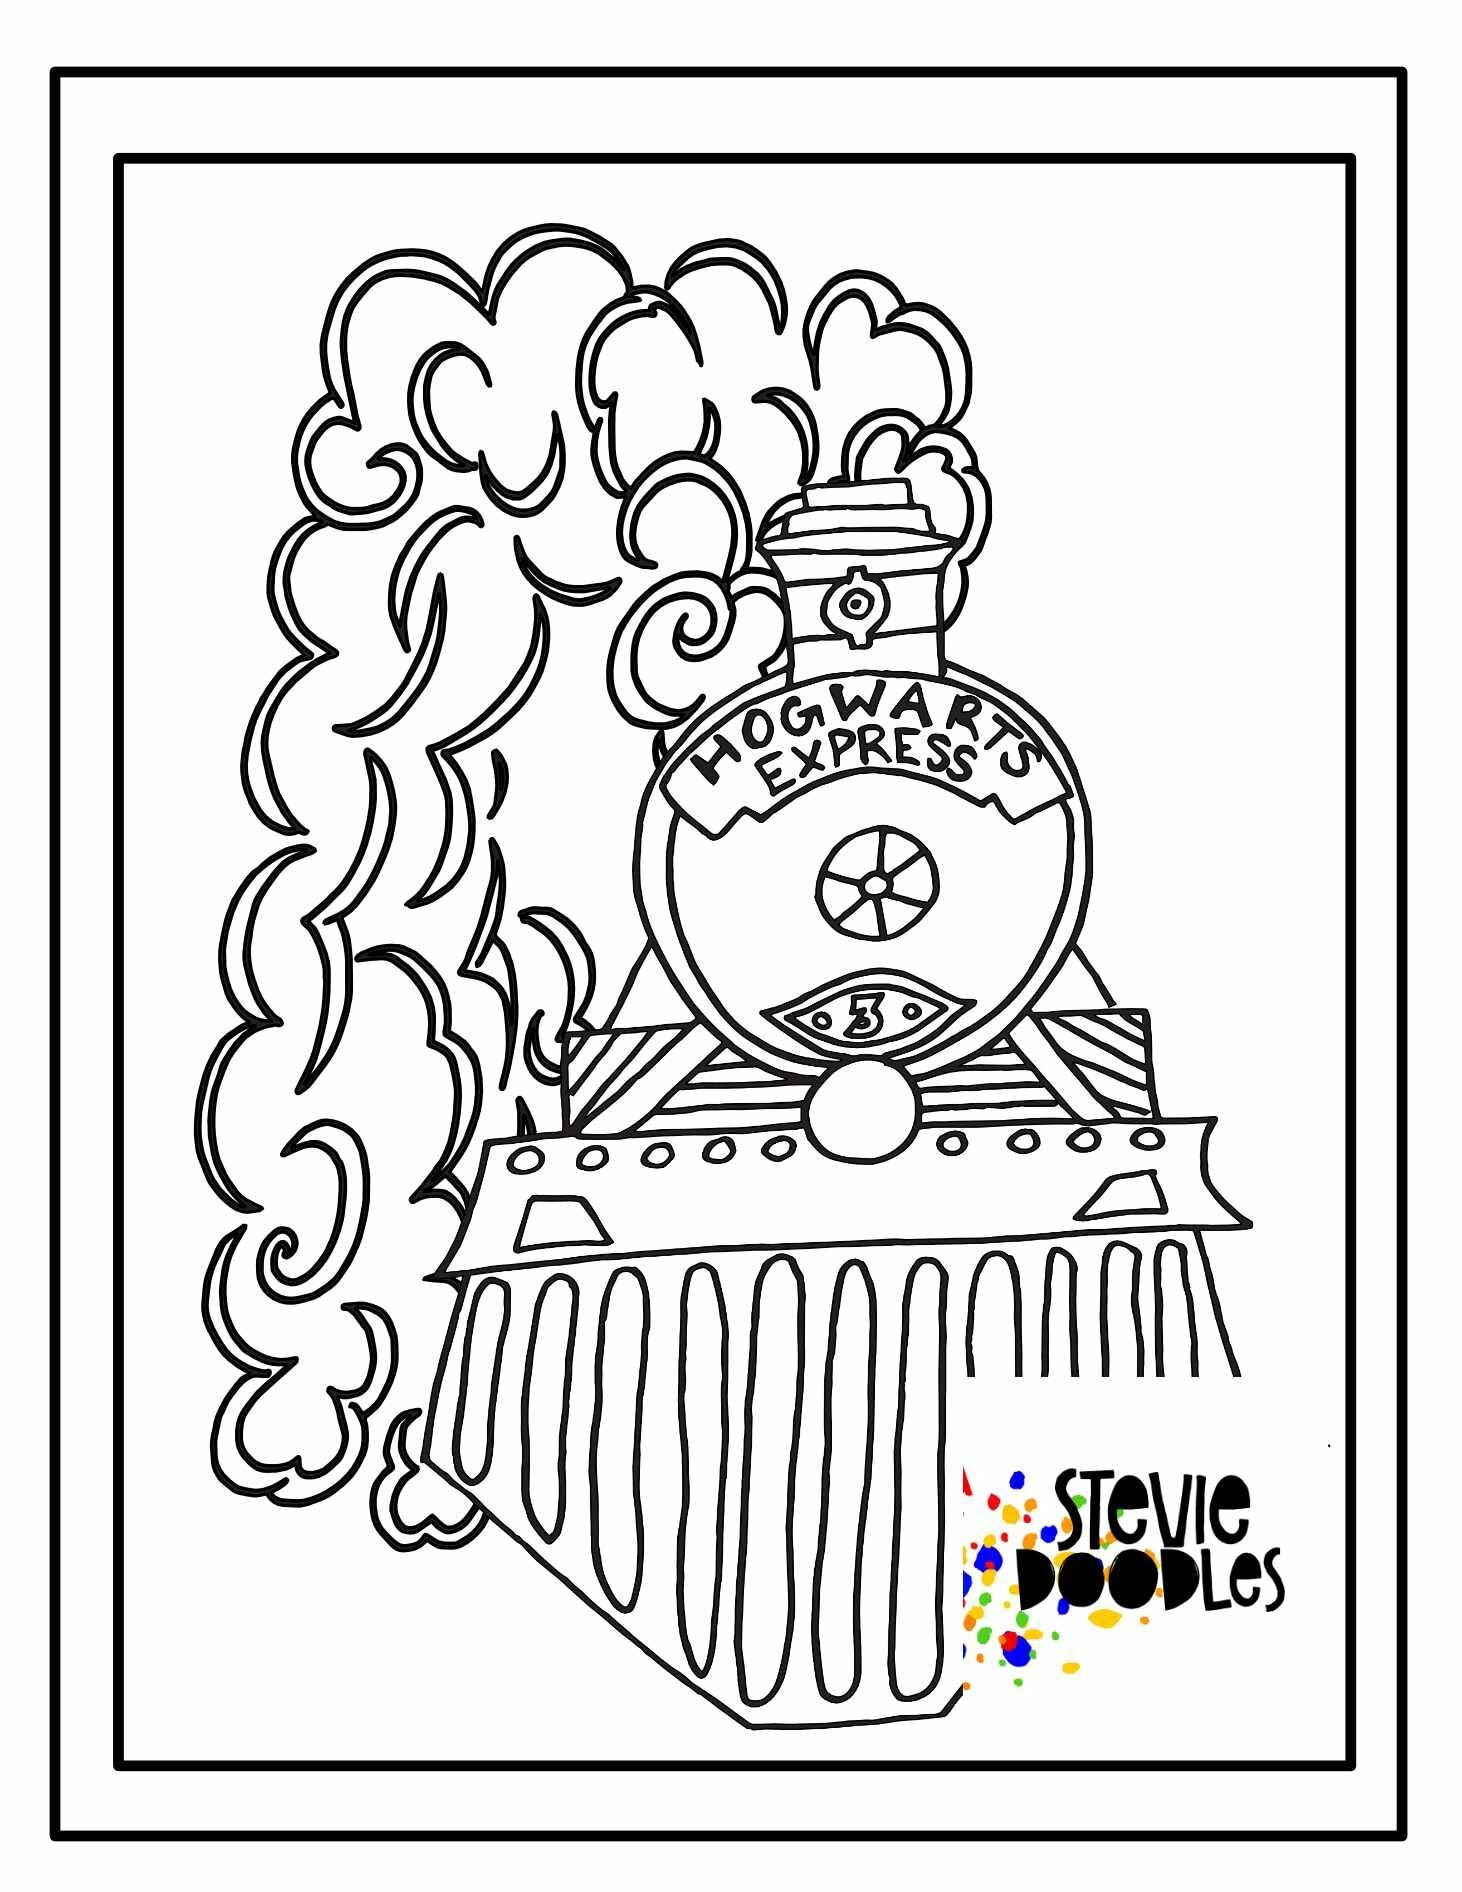 Hogwarts Express Free Coloring Pages Stevie Doodles Harry Potter Coloring Pages Free Coloring Pages Harry Potter Colors